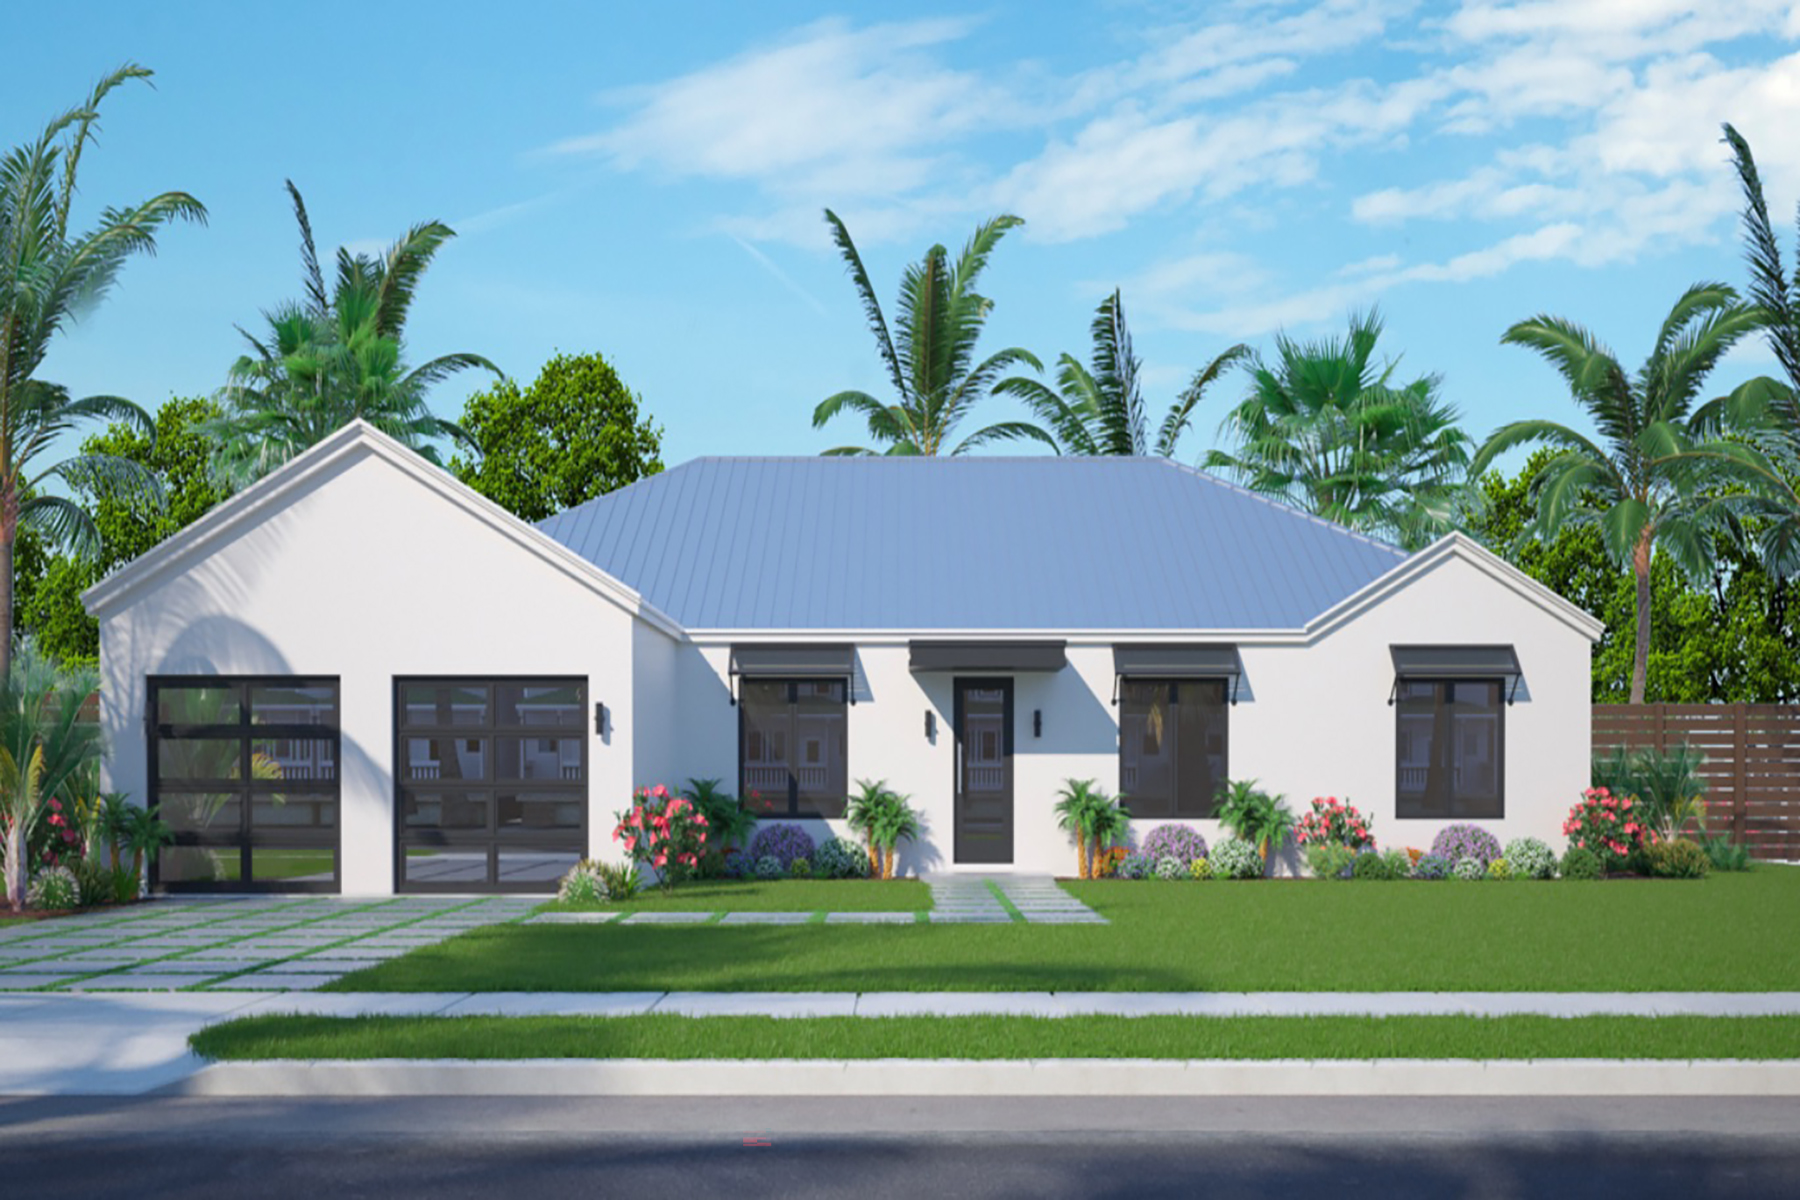 Single Family Homes for Sale at WINTER PARK 2340 Lafayette Ave Winter Park, Florida 32789 United States